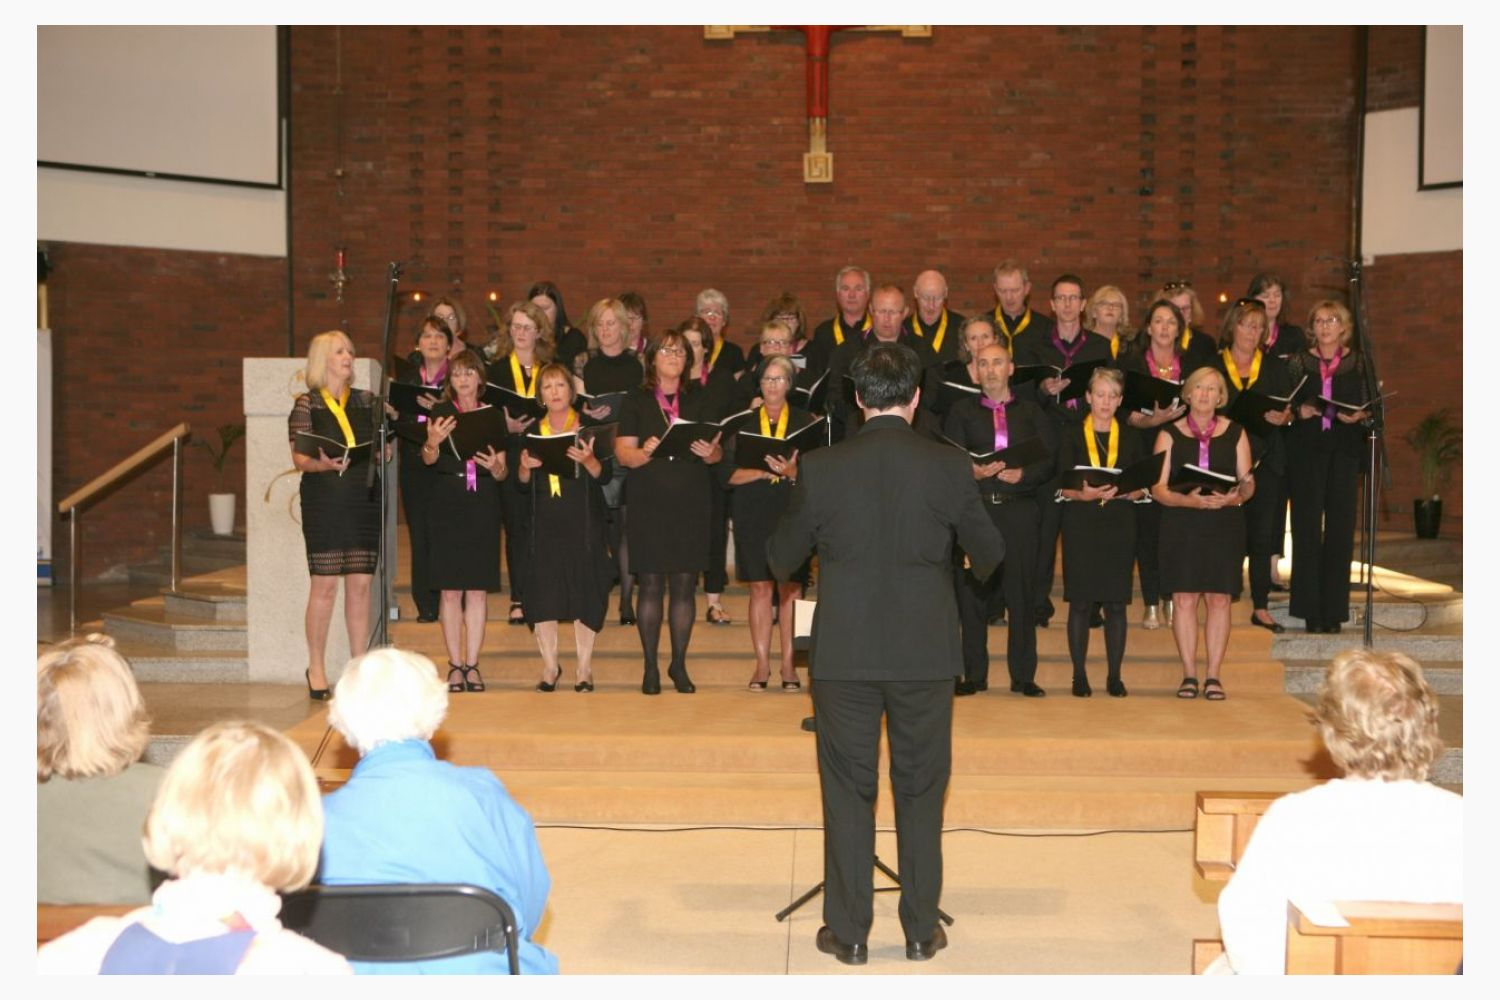 Photo's From The Walk While You Can Concert Featuring Kilmacud Crokes Choir Friday June 22nd